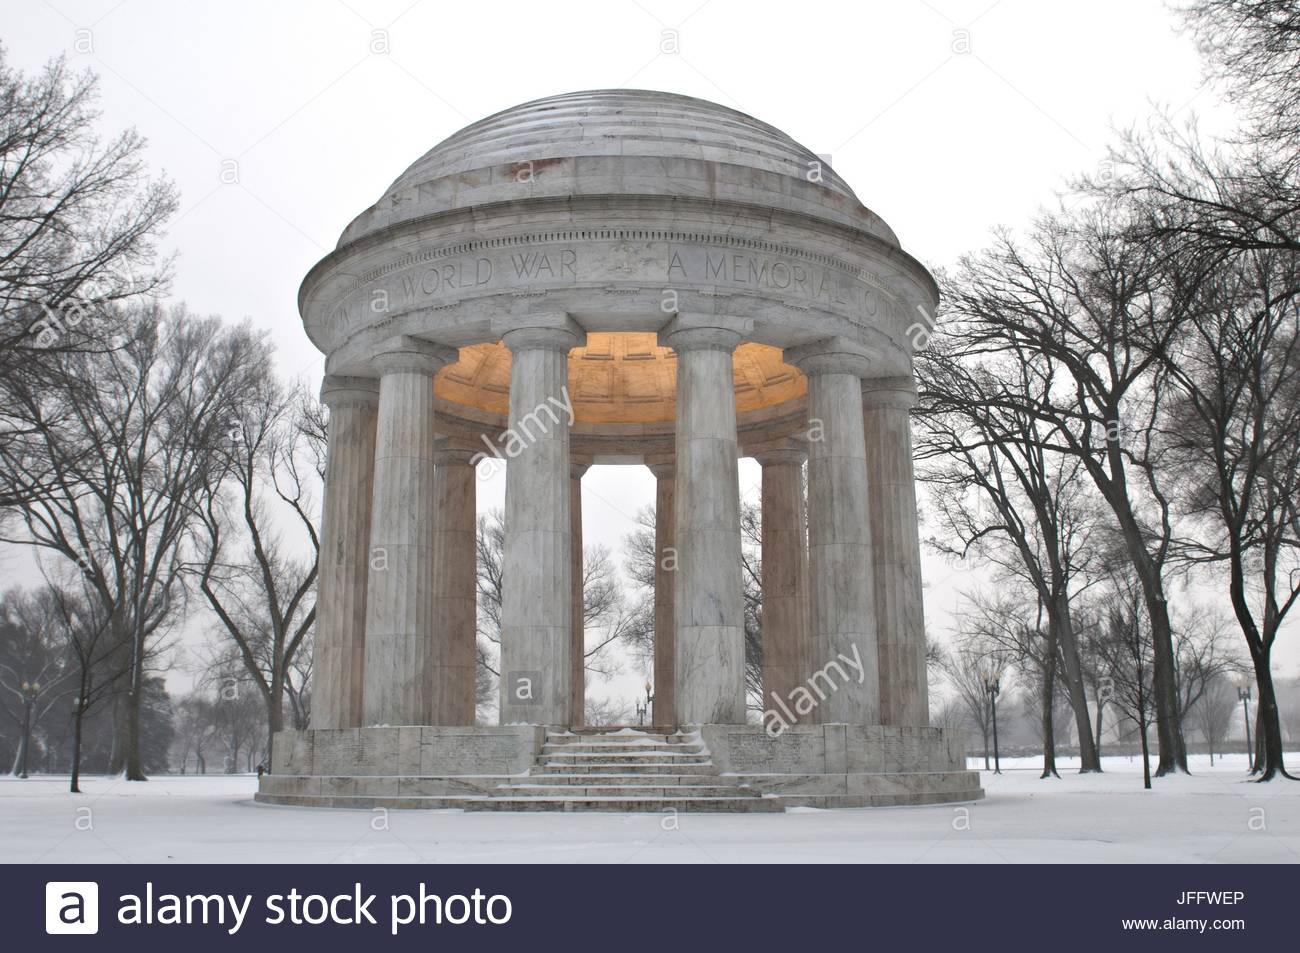 The District of Columbia War Memorial commemorates the citizens of the District of Columbia who served in World - Stock Image